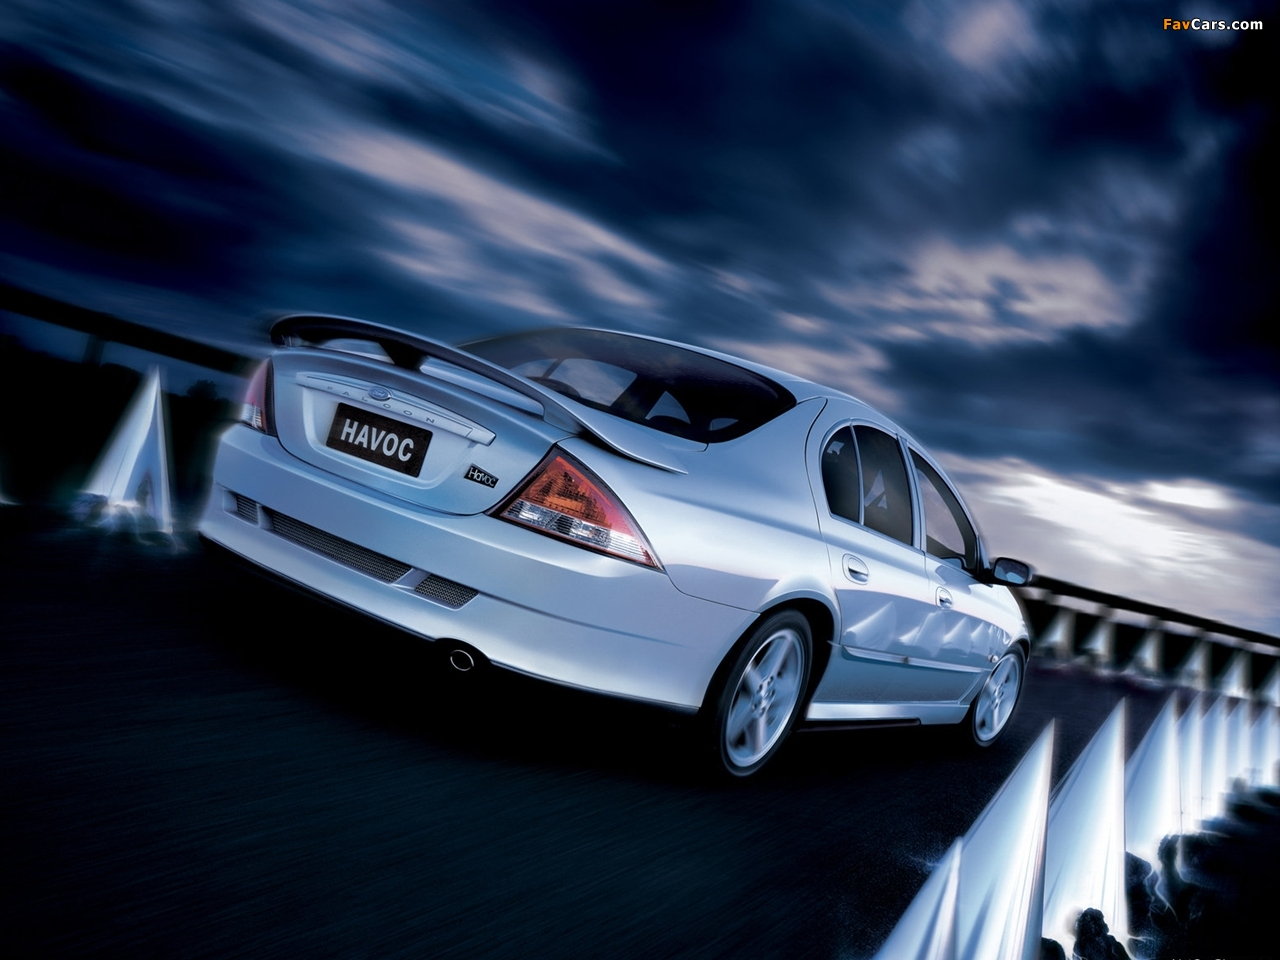 1280x960 - Ford Falcon Wallpapers 24